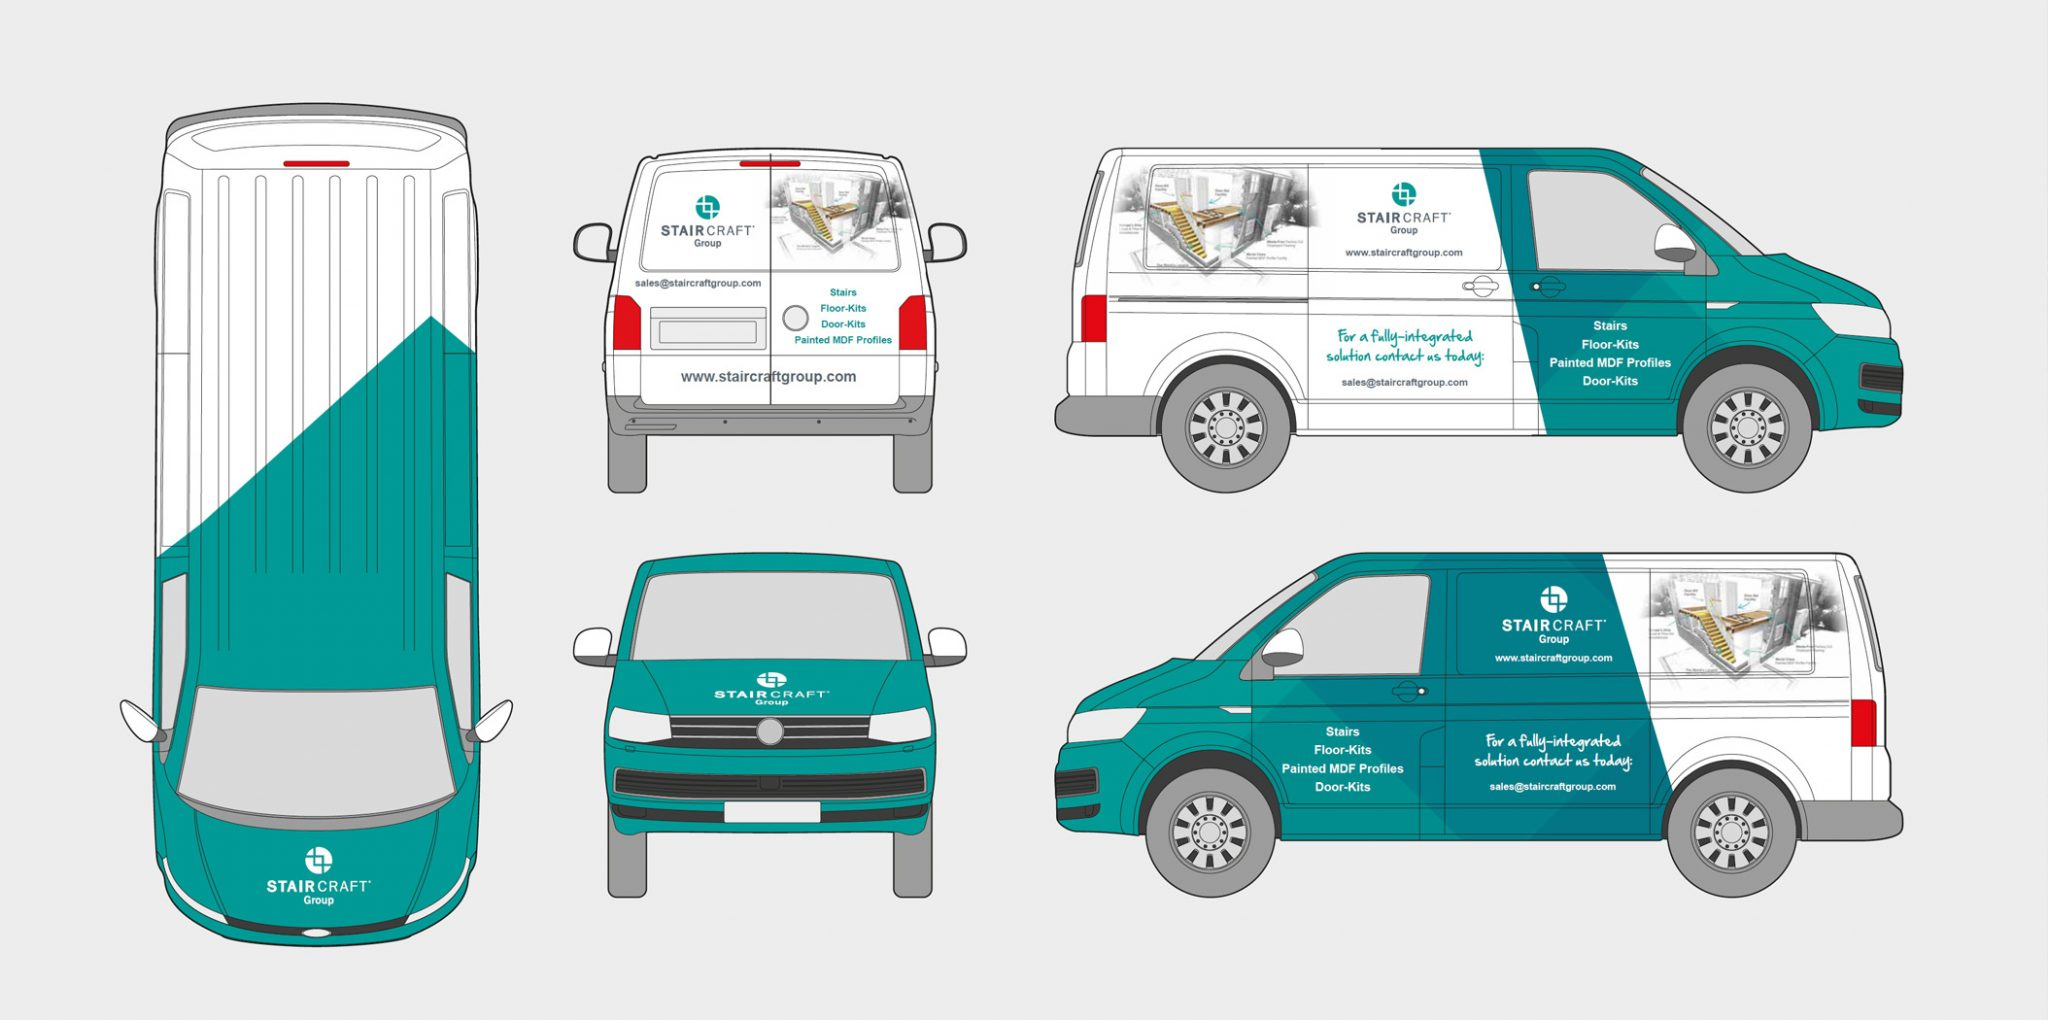 car with print sticker and business name stair craft